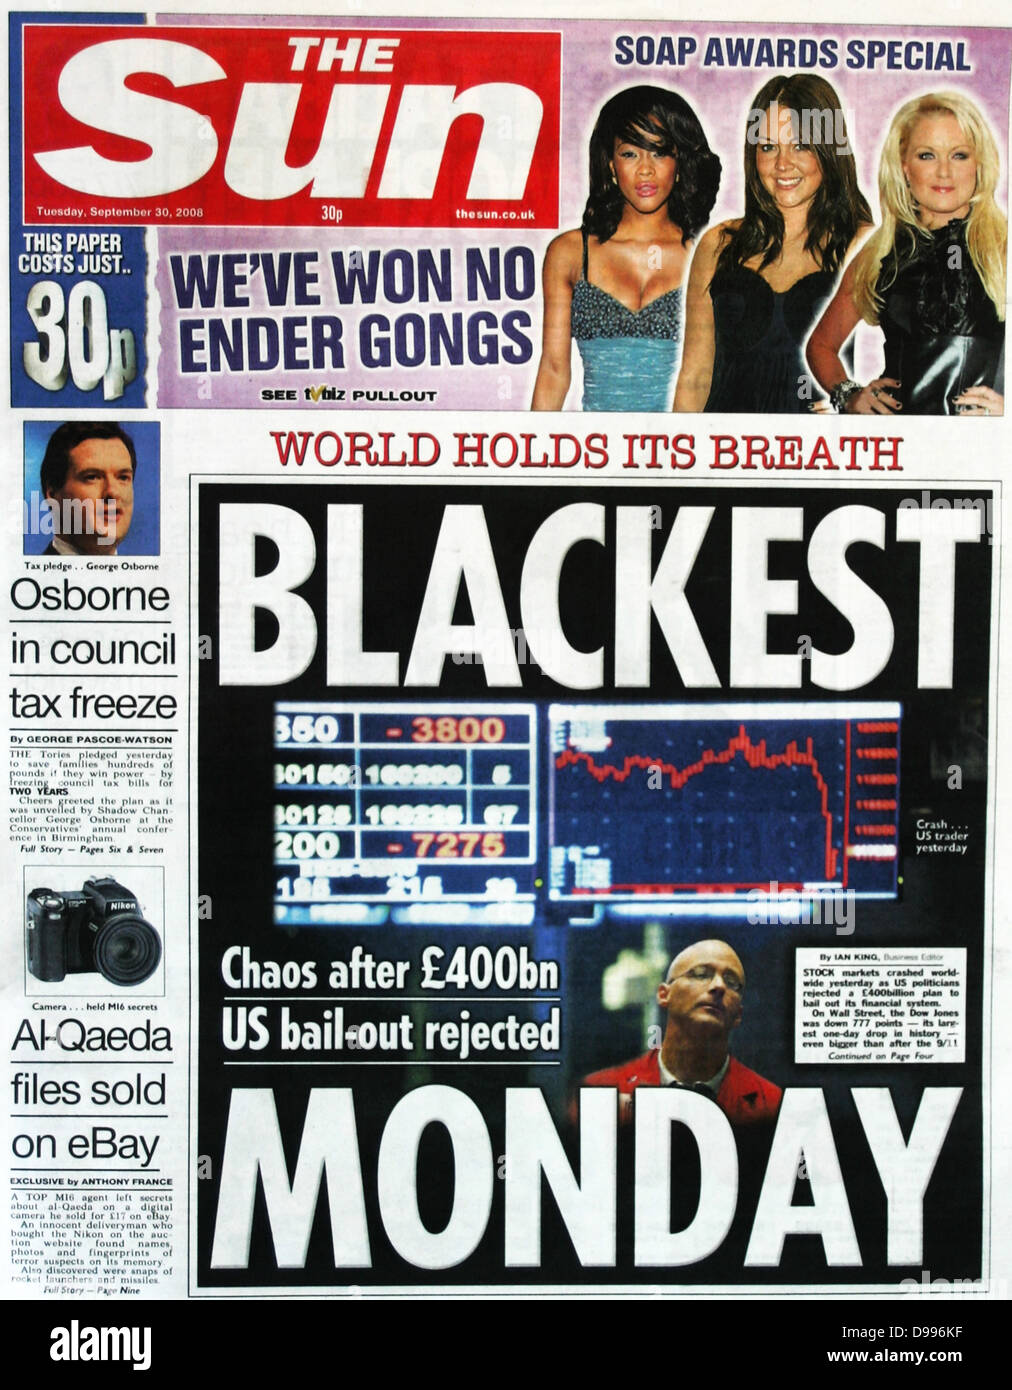 The Sun (English newspaper) headline on collapse of stock market and Financial institutions in September 2008 - Stock Image